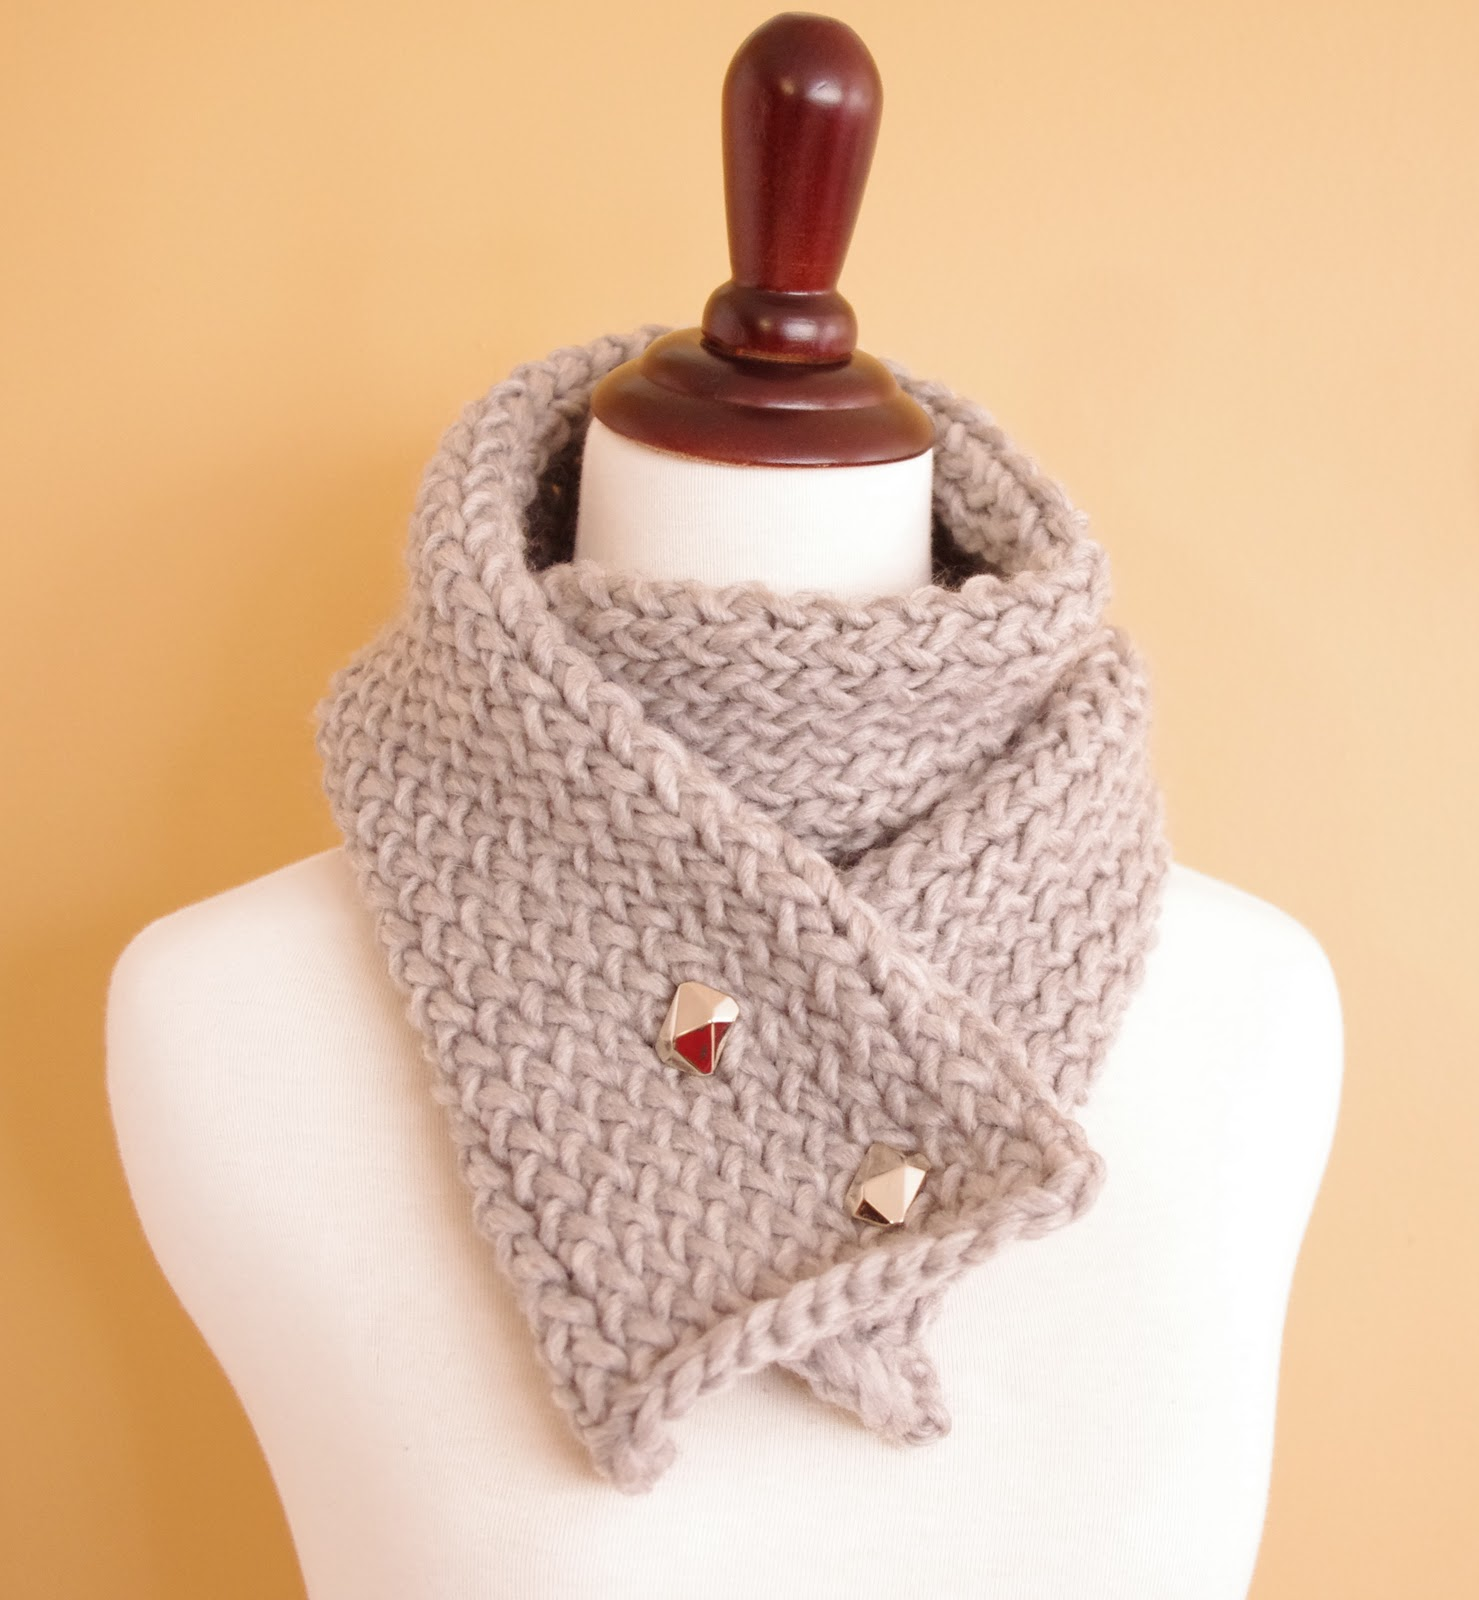 Crocheting Easier Than Knitting : SewPetiteGal: Chunky Scarf Mania - Knitting and Crocheting